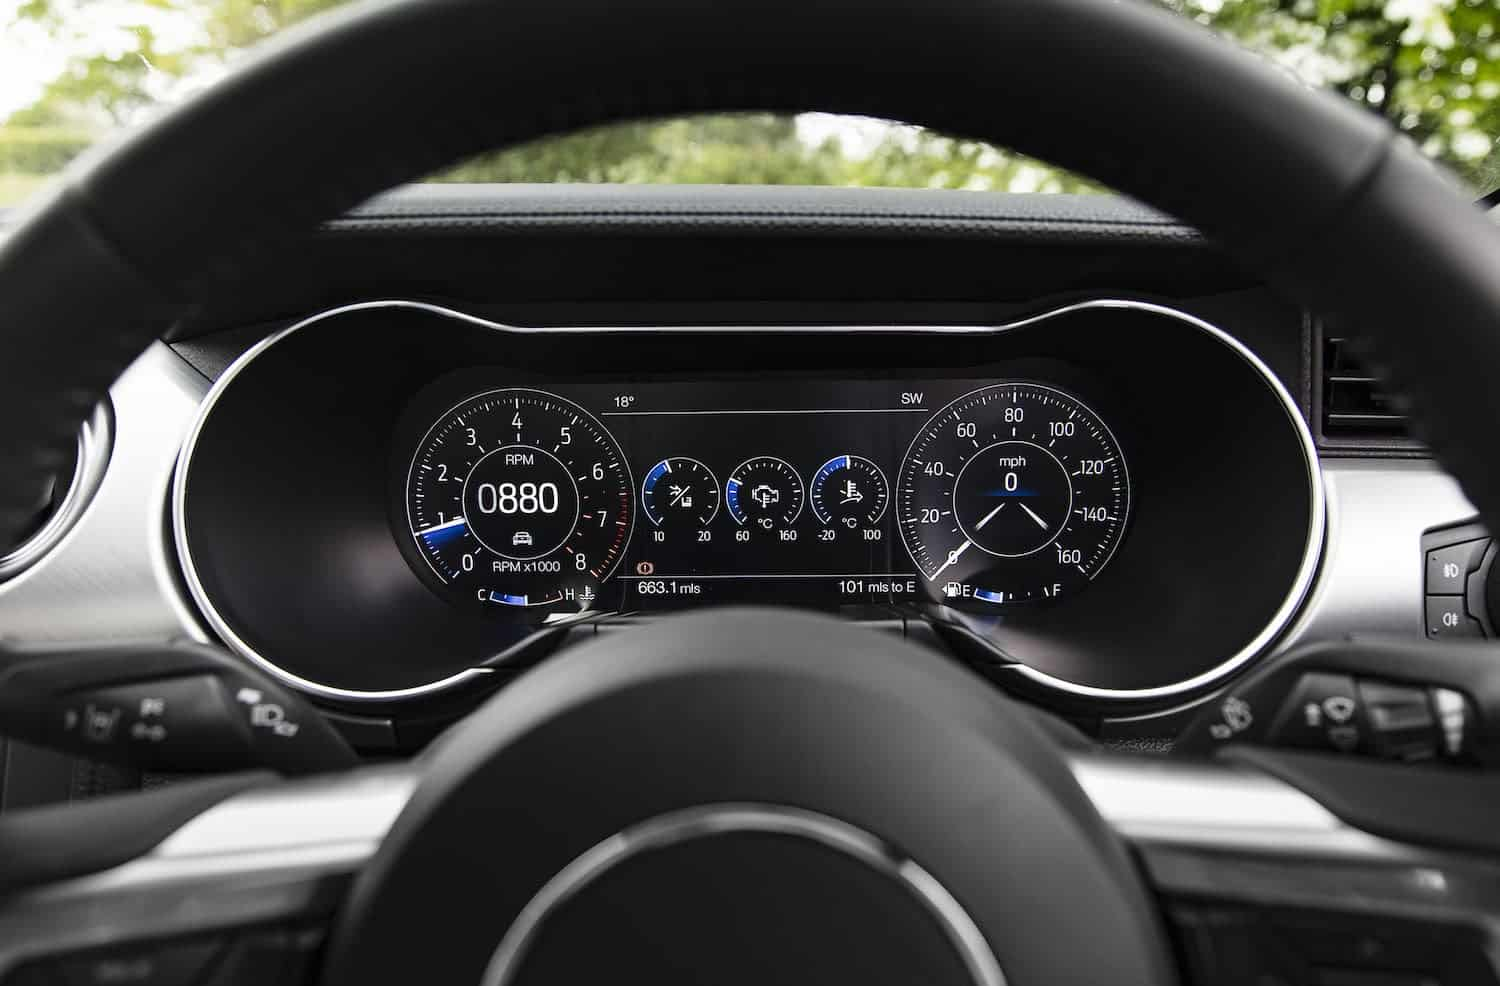 Ford Mustang instrument display